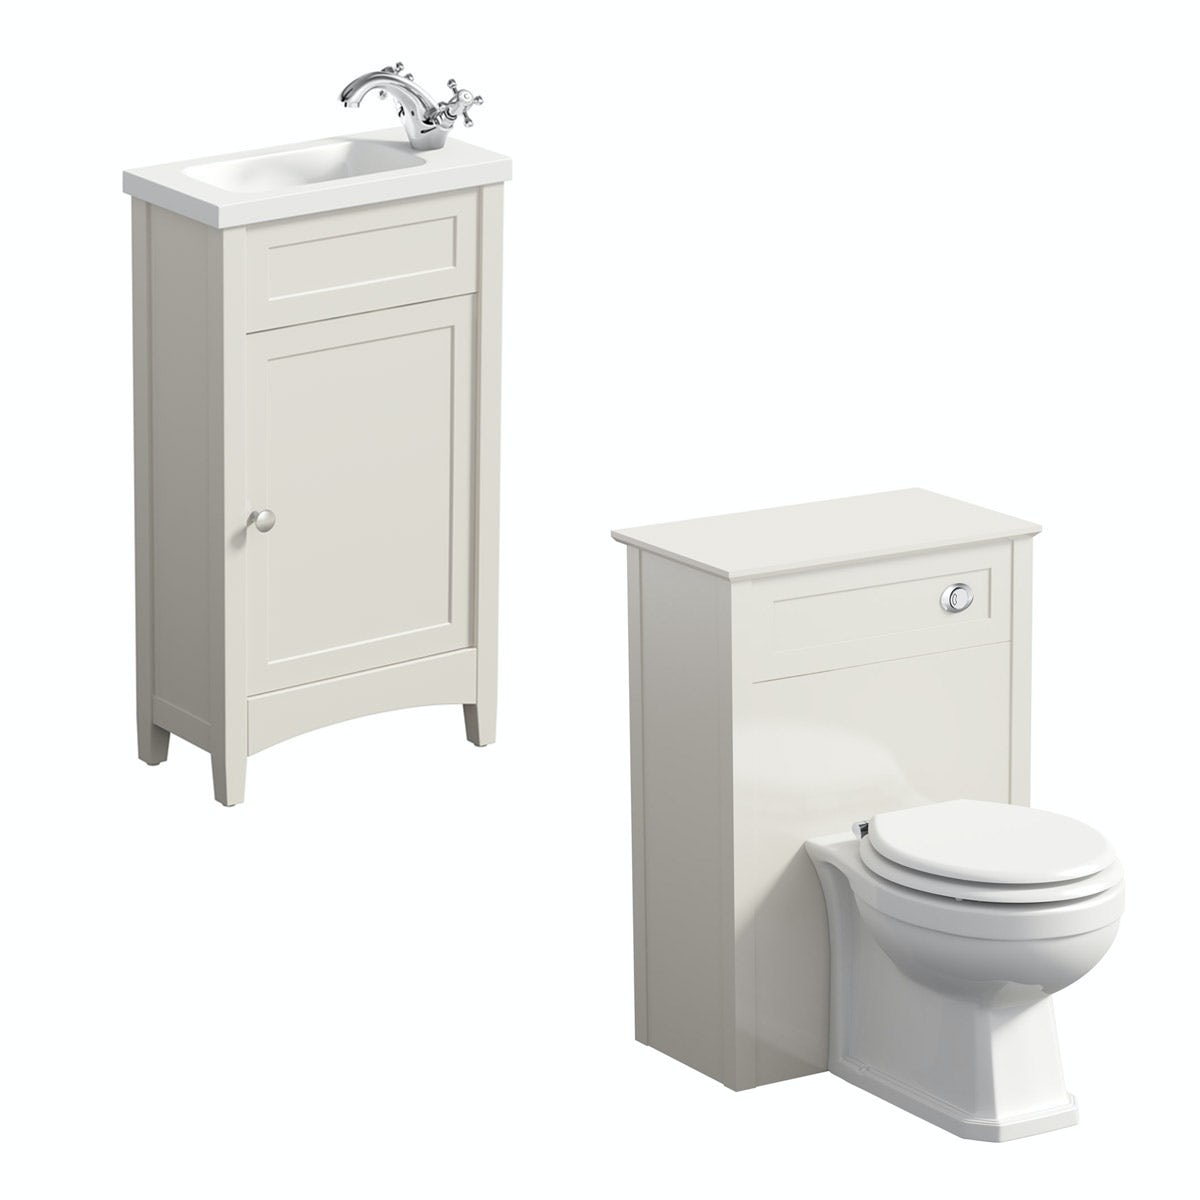 Ivory bathroom suite - The Bath Co Camberley Ivory Cloakroom Furniture Suite